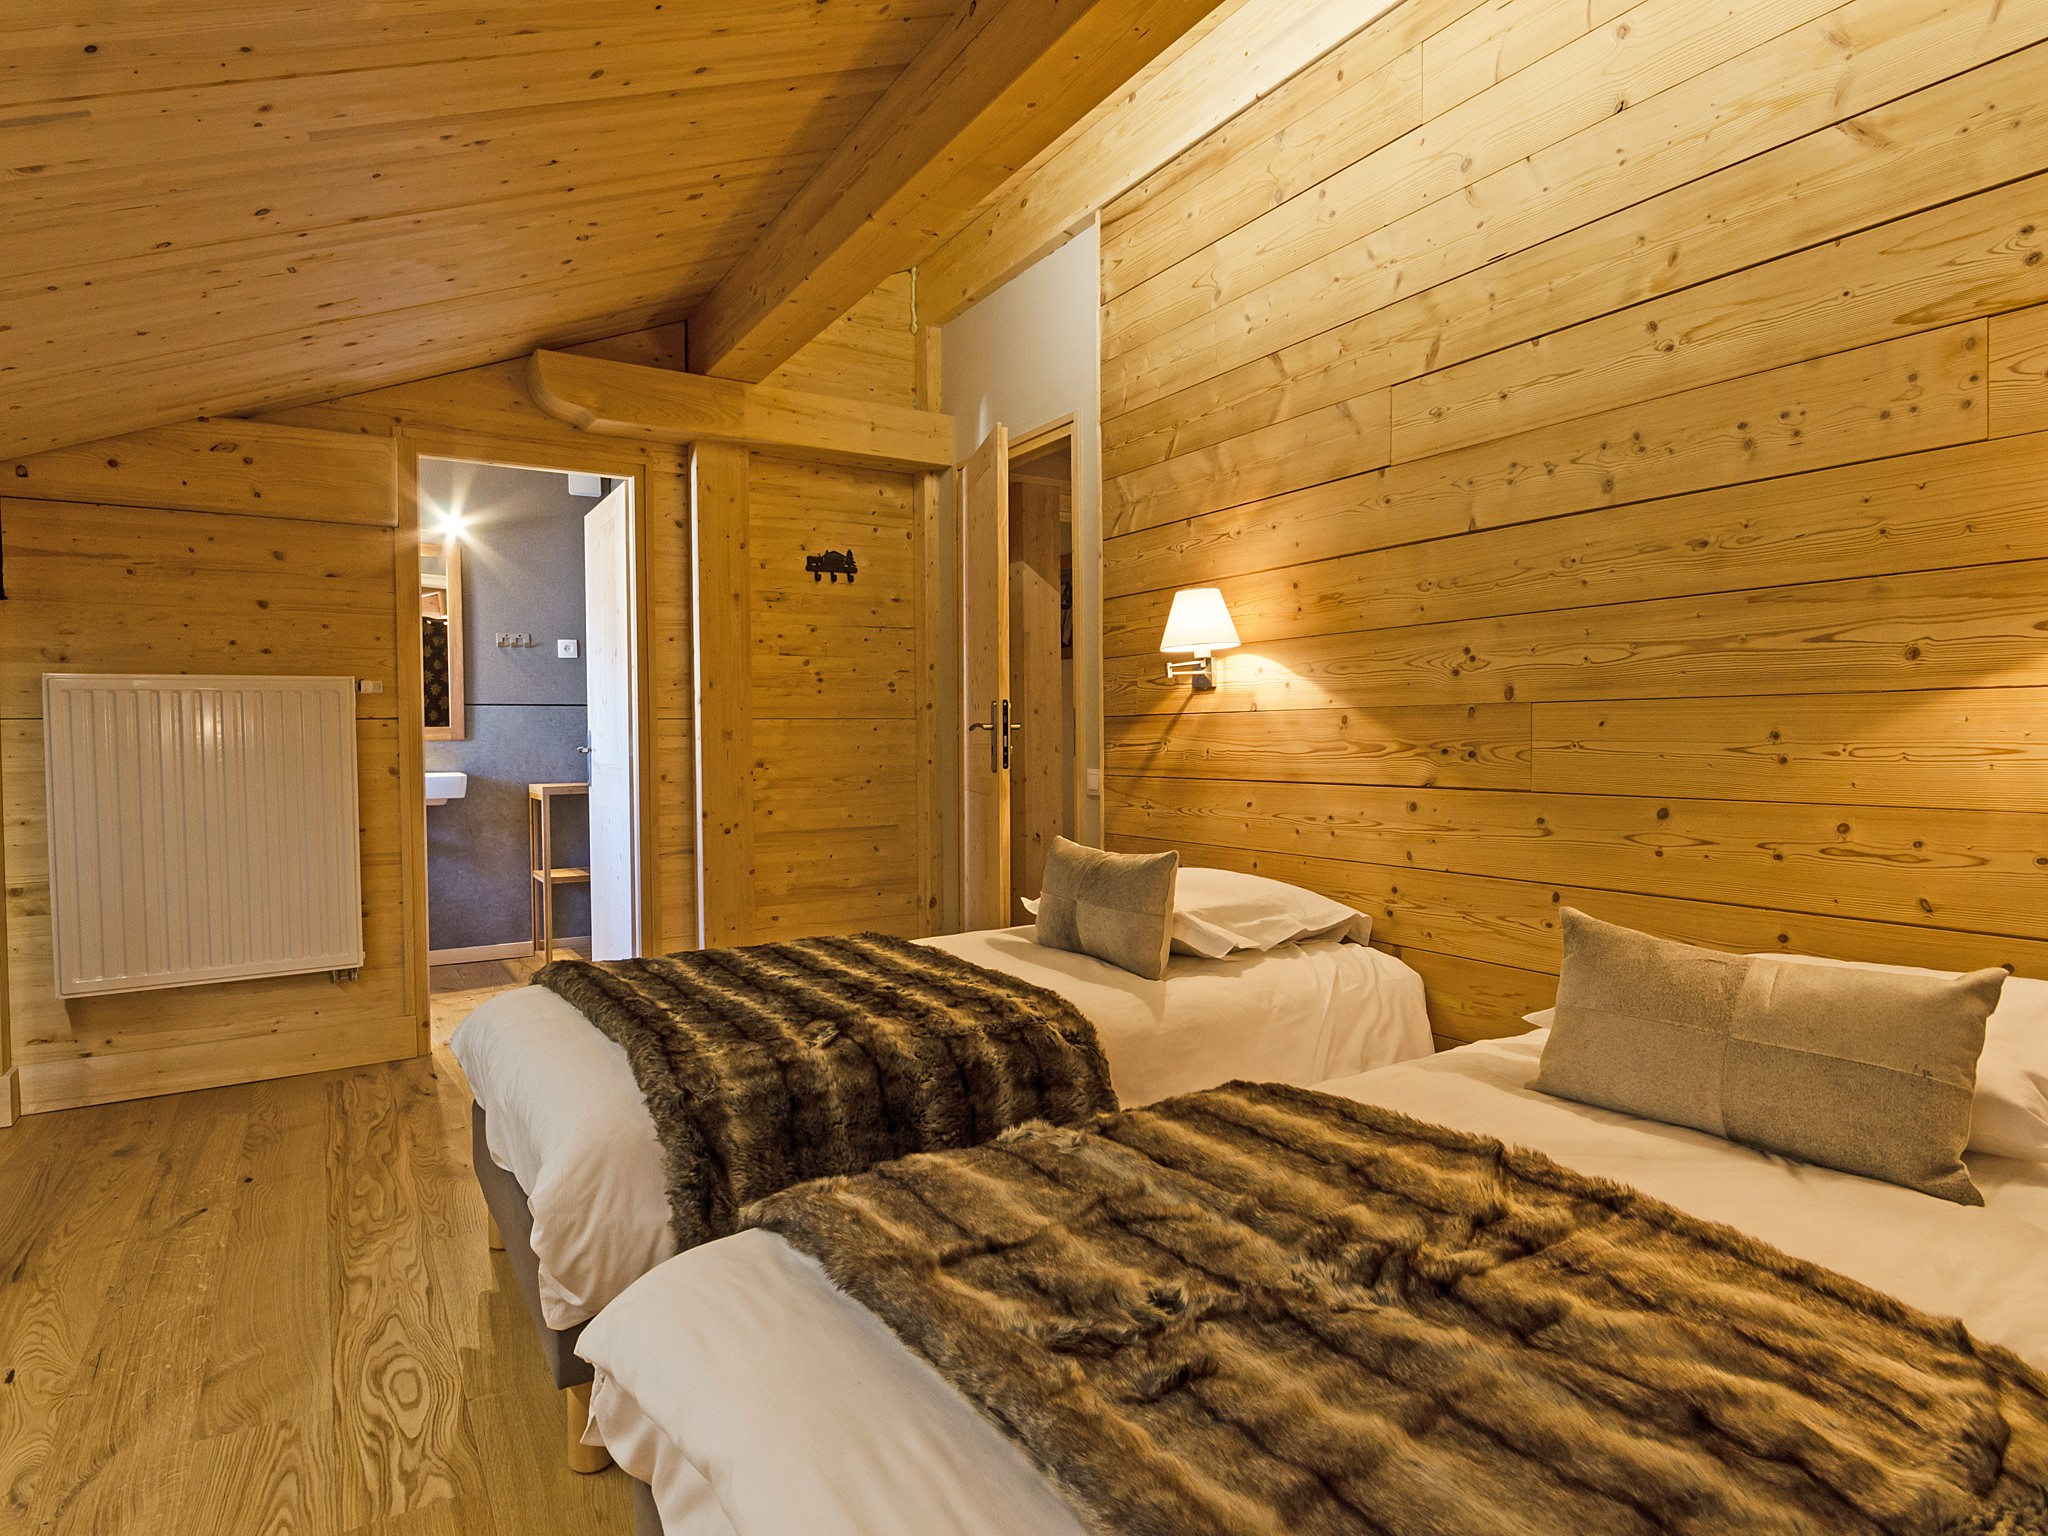 Chalet de Pierre - bedroom